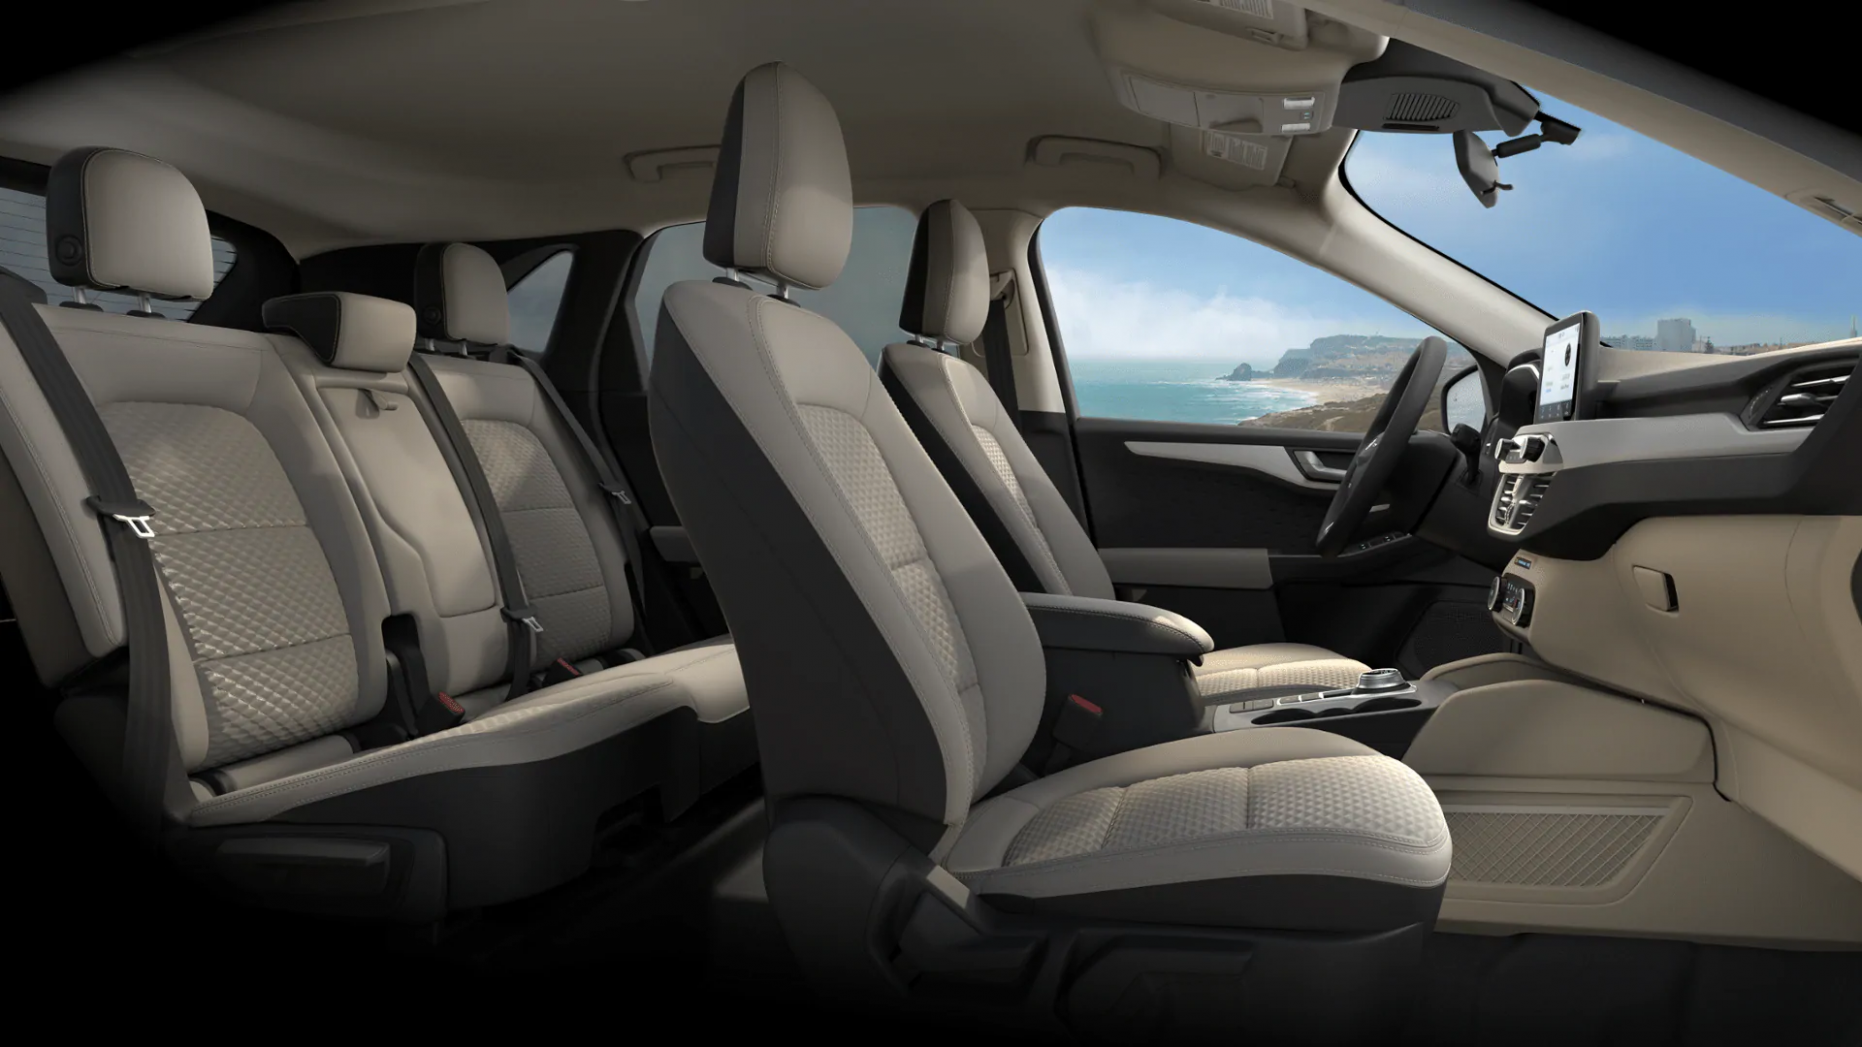 6 Ford Escape Interior Trim Material and Color Options- Akins Ford